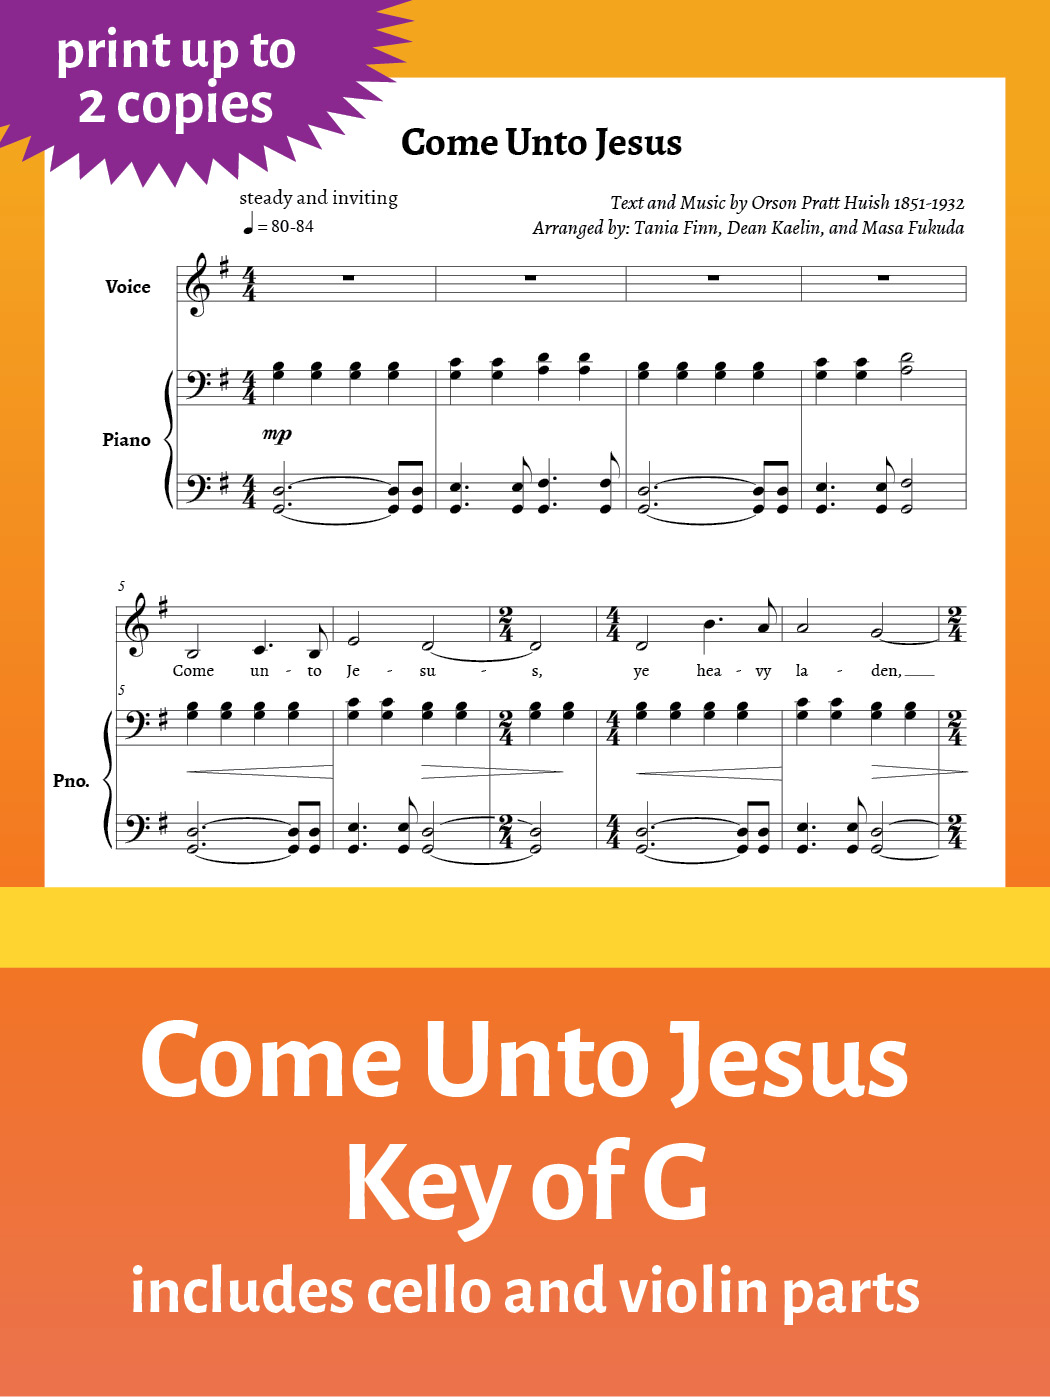 Come Unto Jesus – Sheet Music – Key of G – up to 2 copies